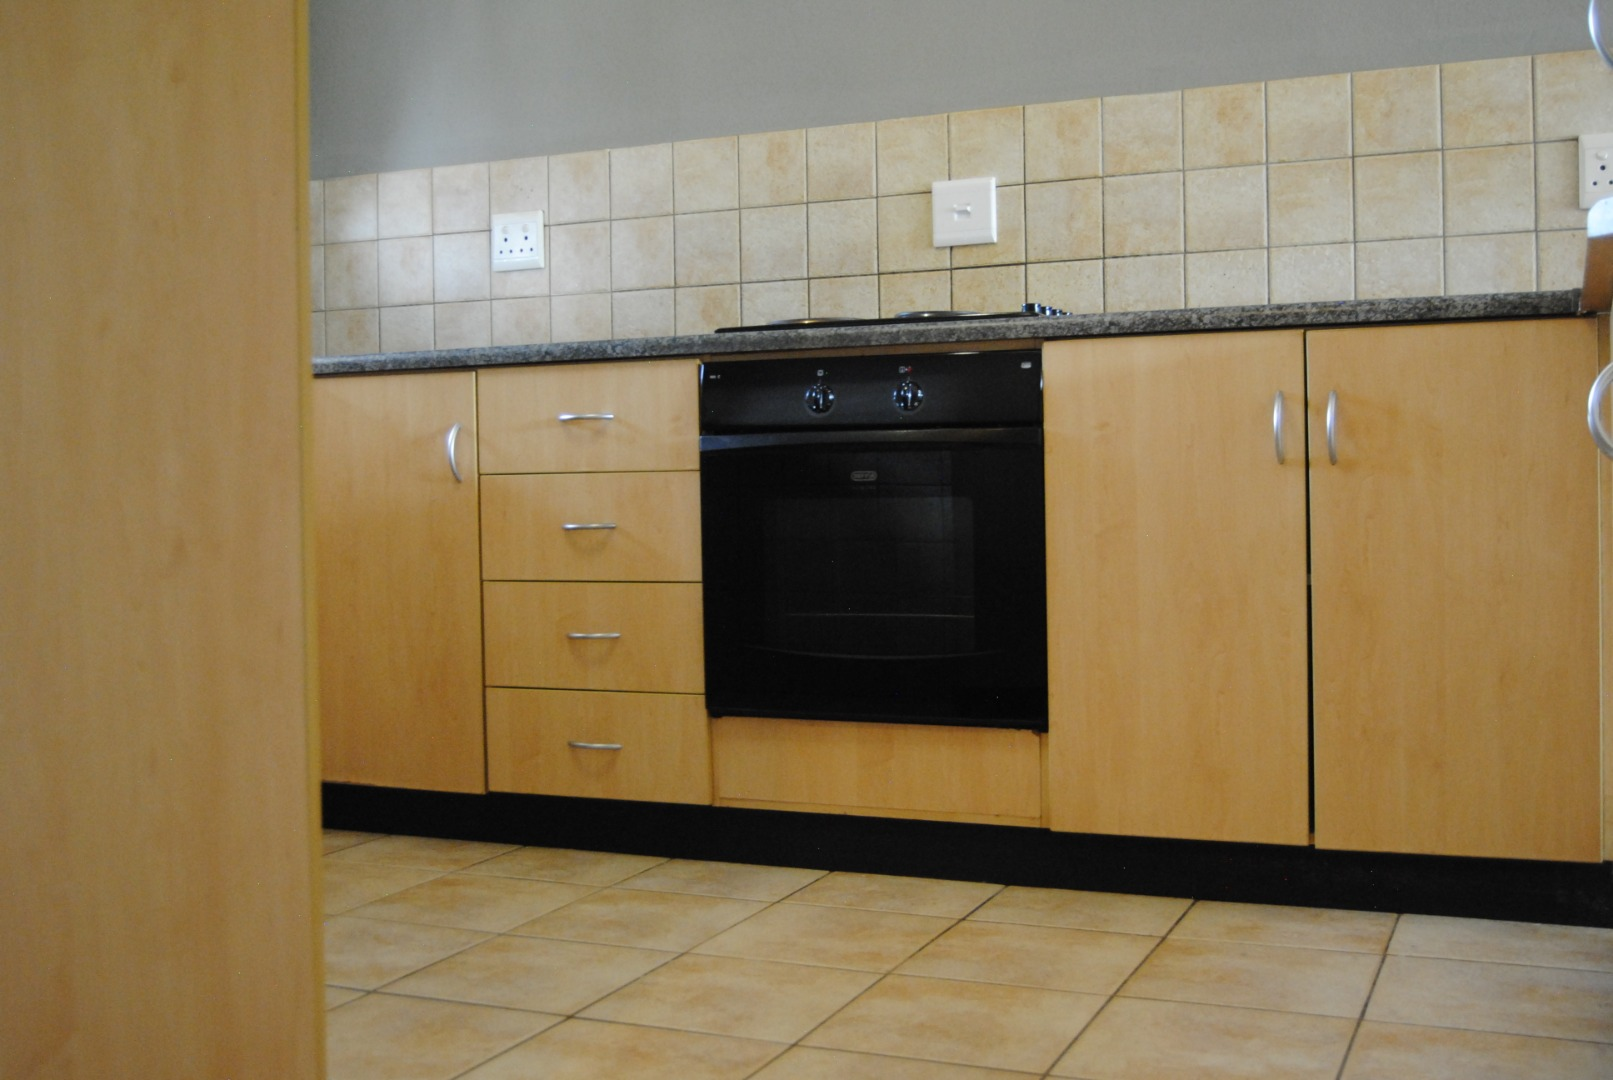 2 Bedroom Apartment / Flat To Rent in Craigavon